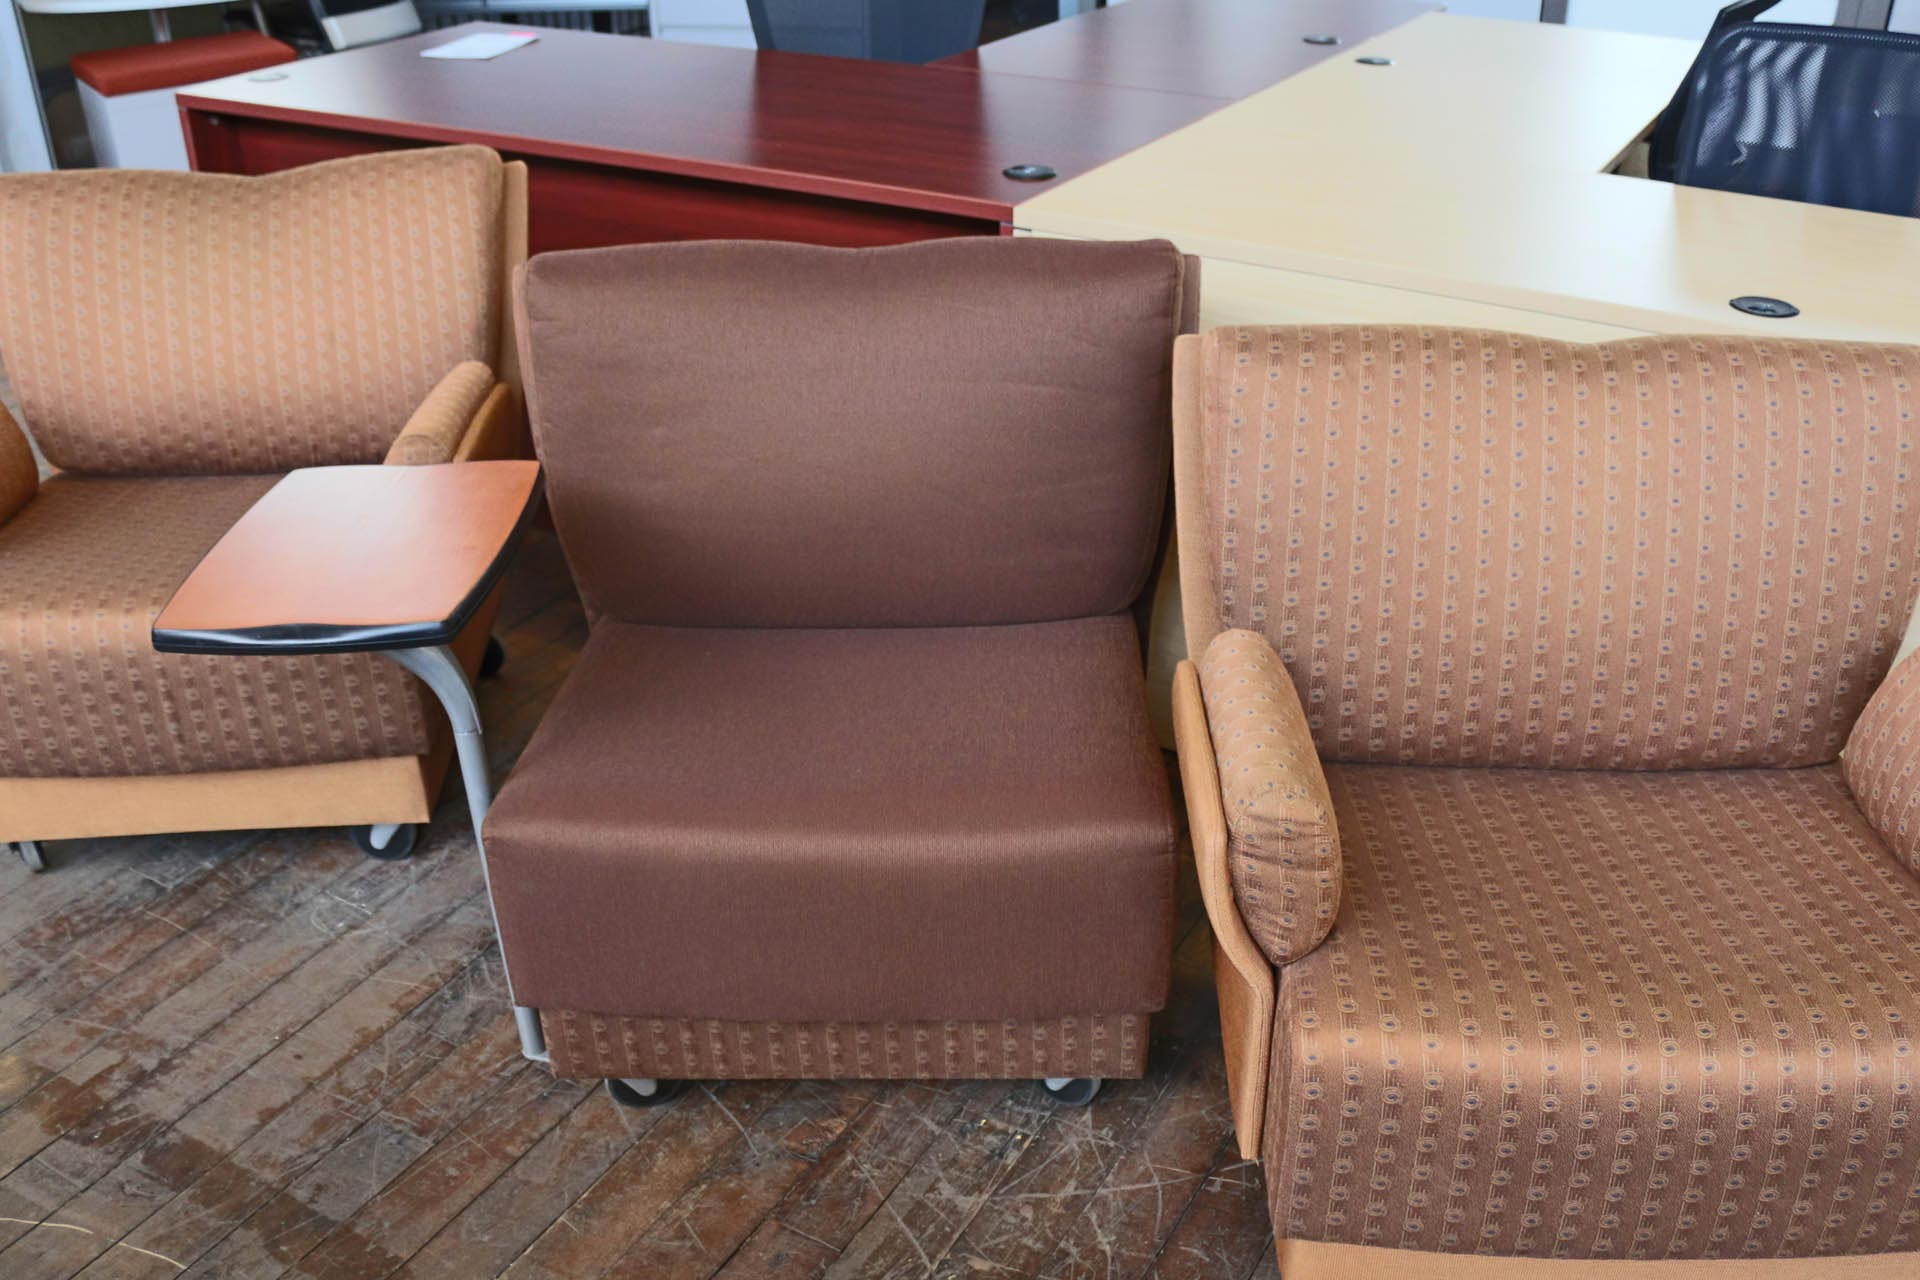 Metro Mobile Lounge Chairs Peartree Office Furniture